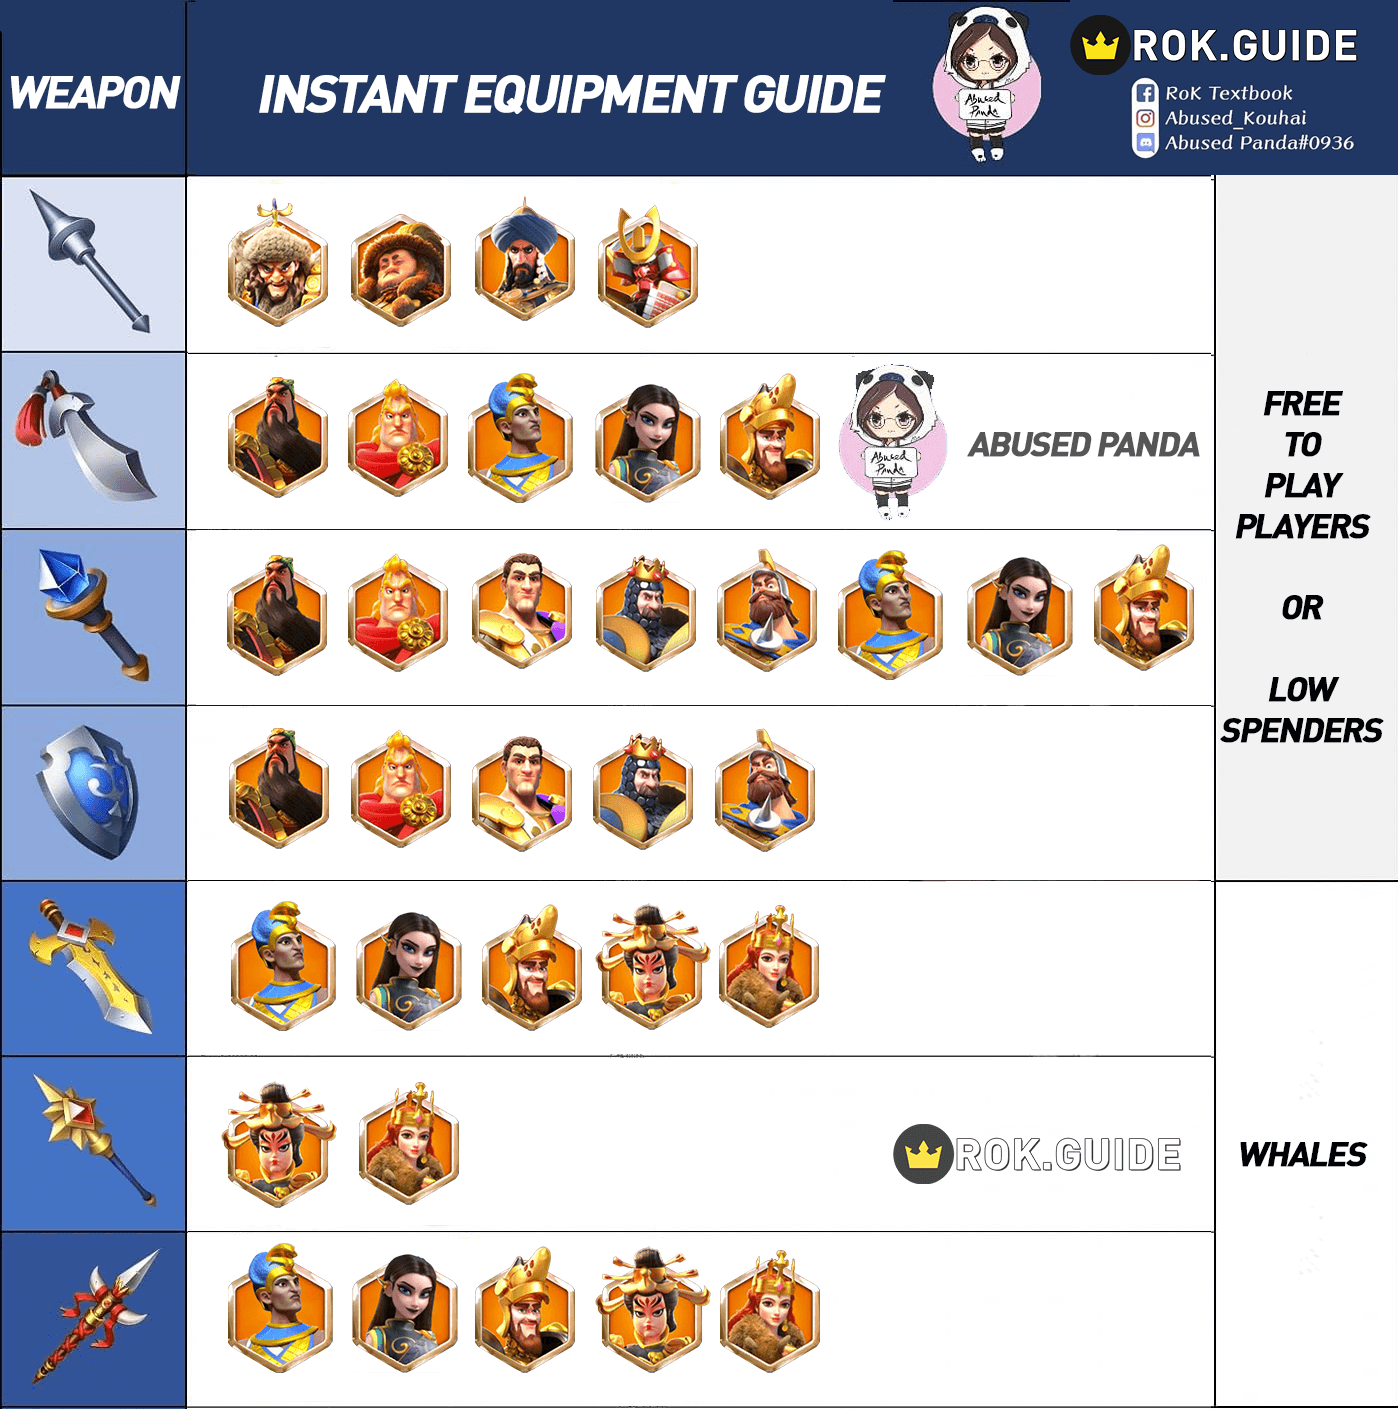 weapon equipment infographic guide Rise of Kingdoms